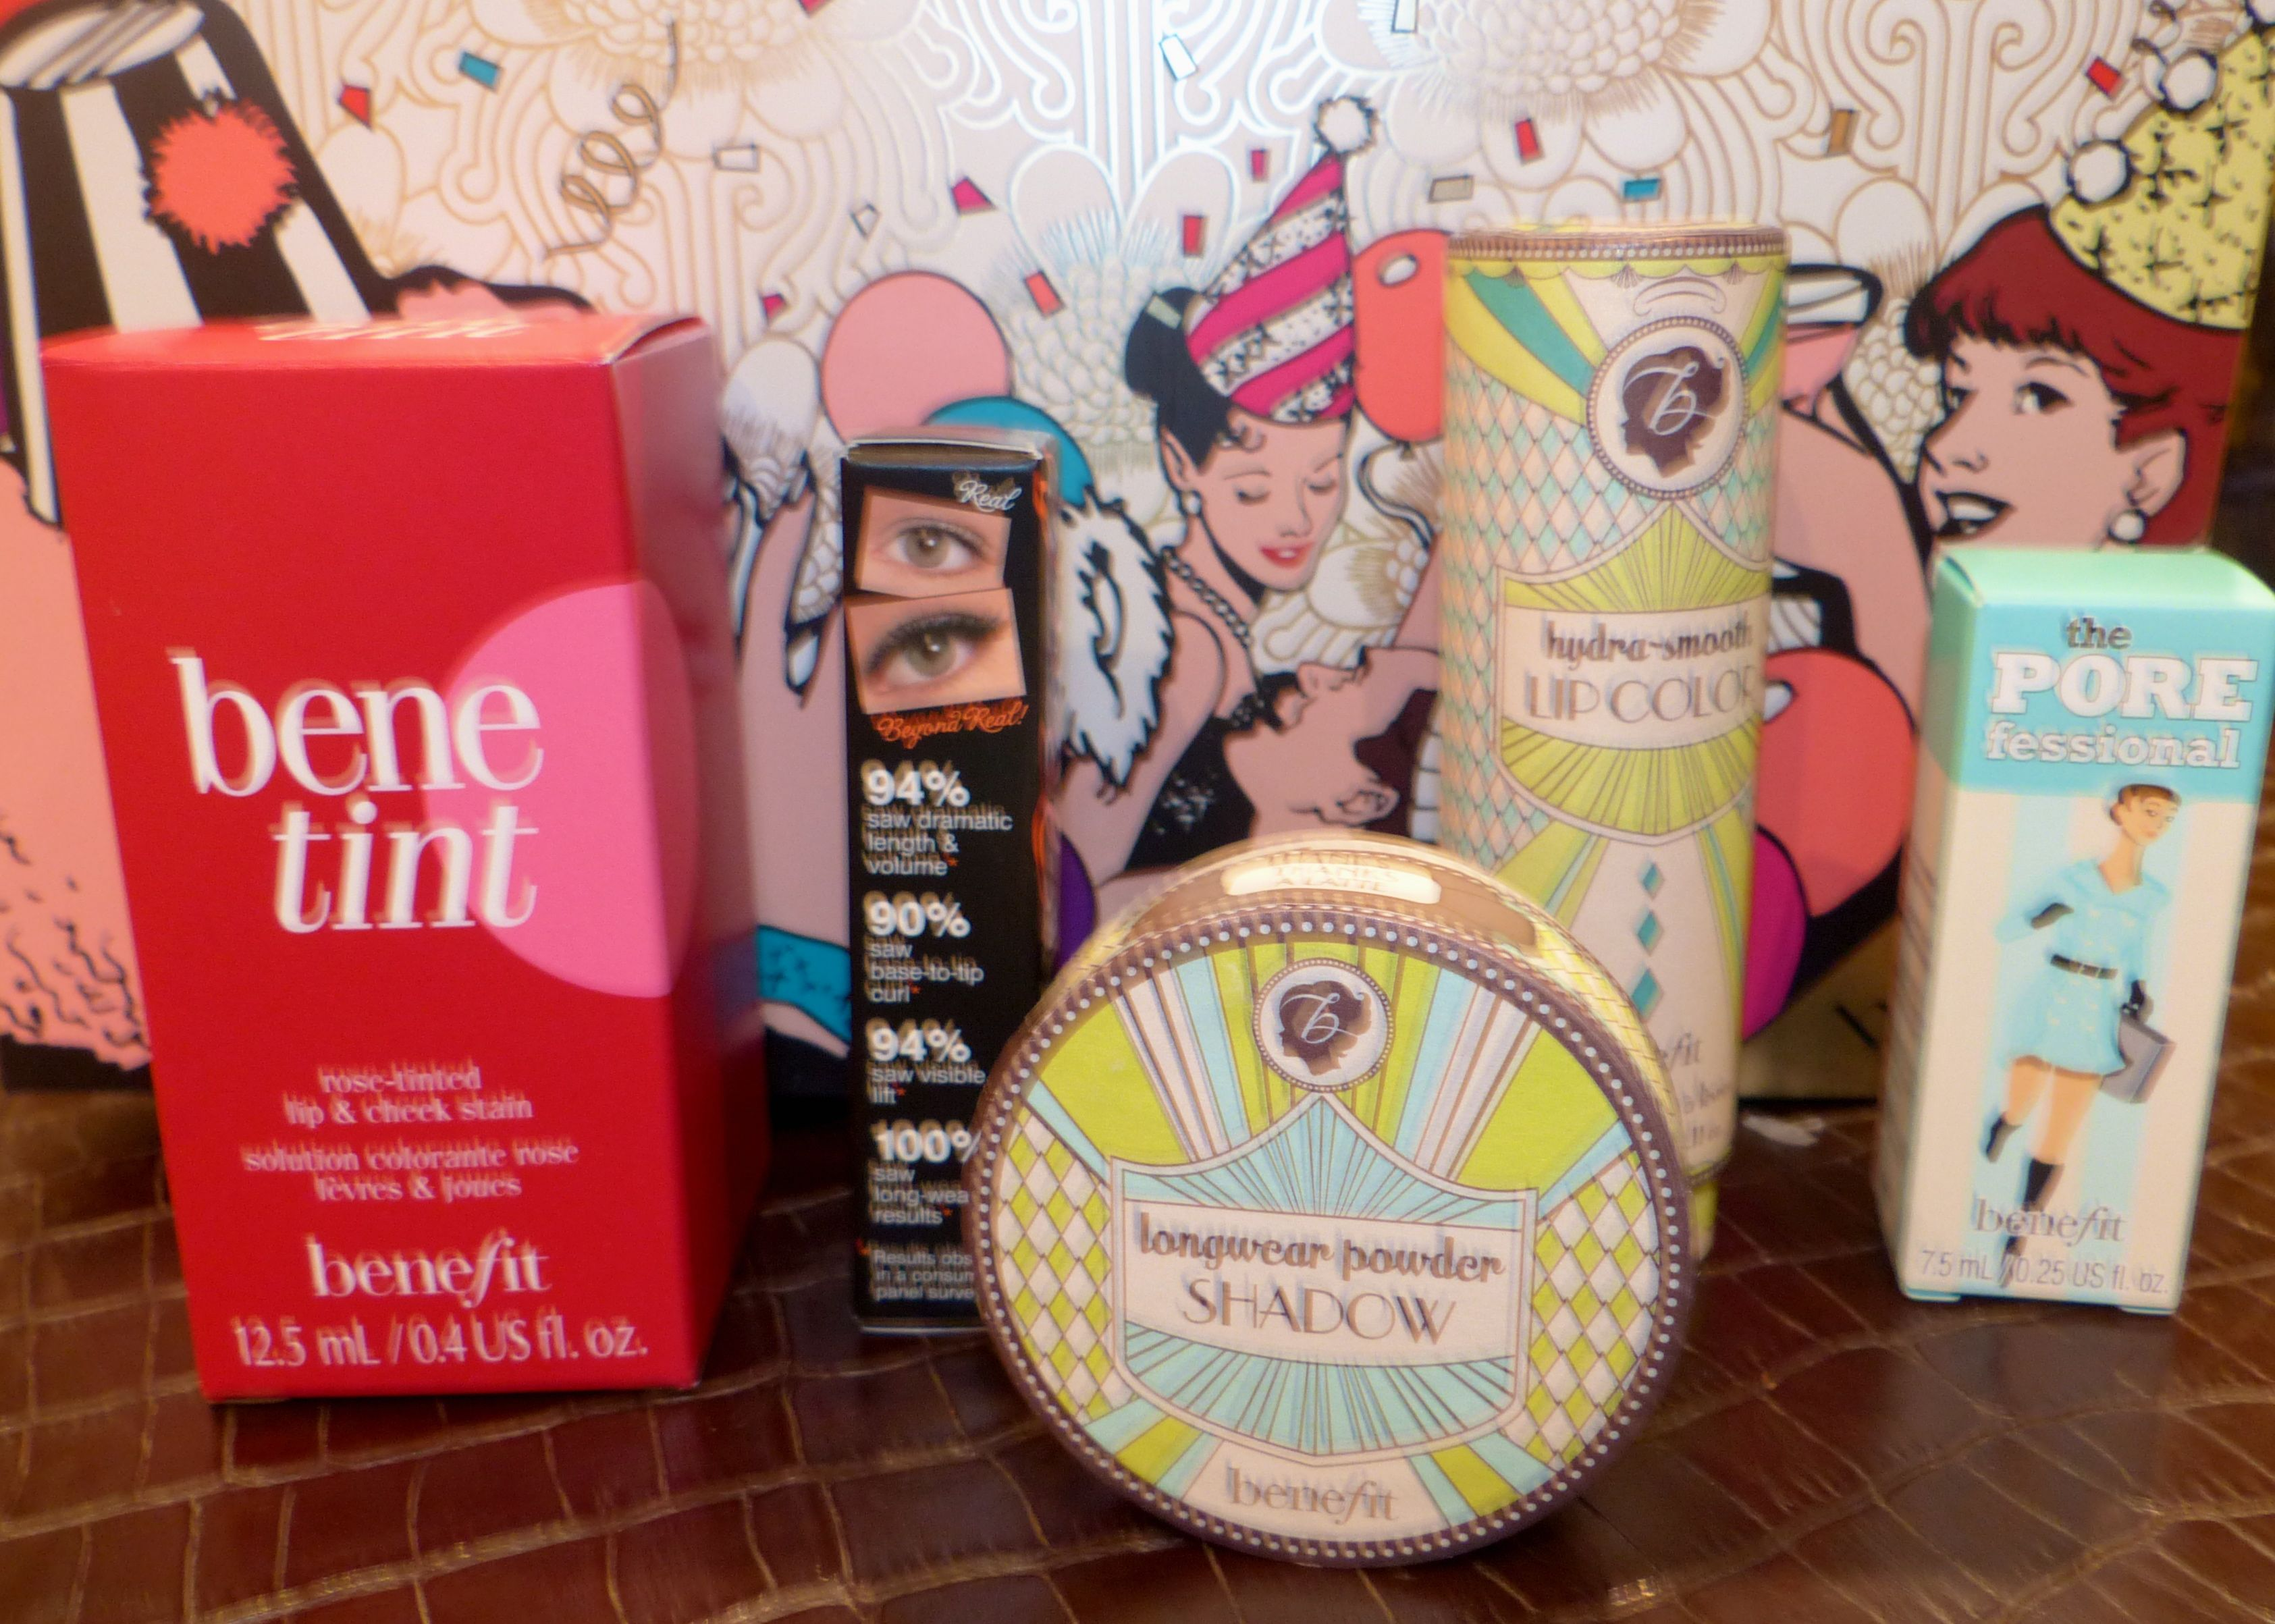 Beautiful make-up from Benefit